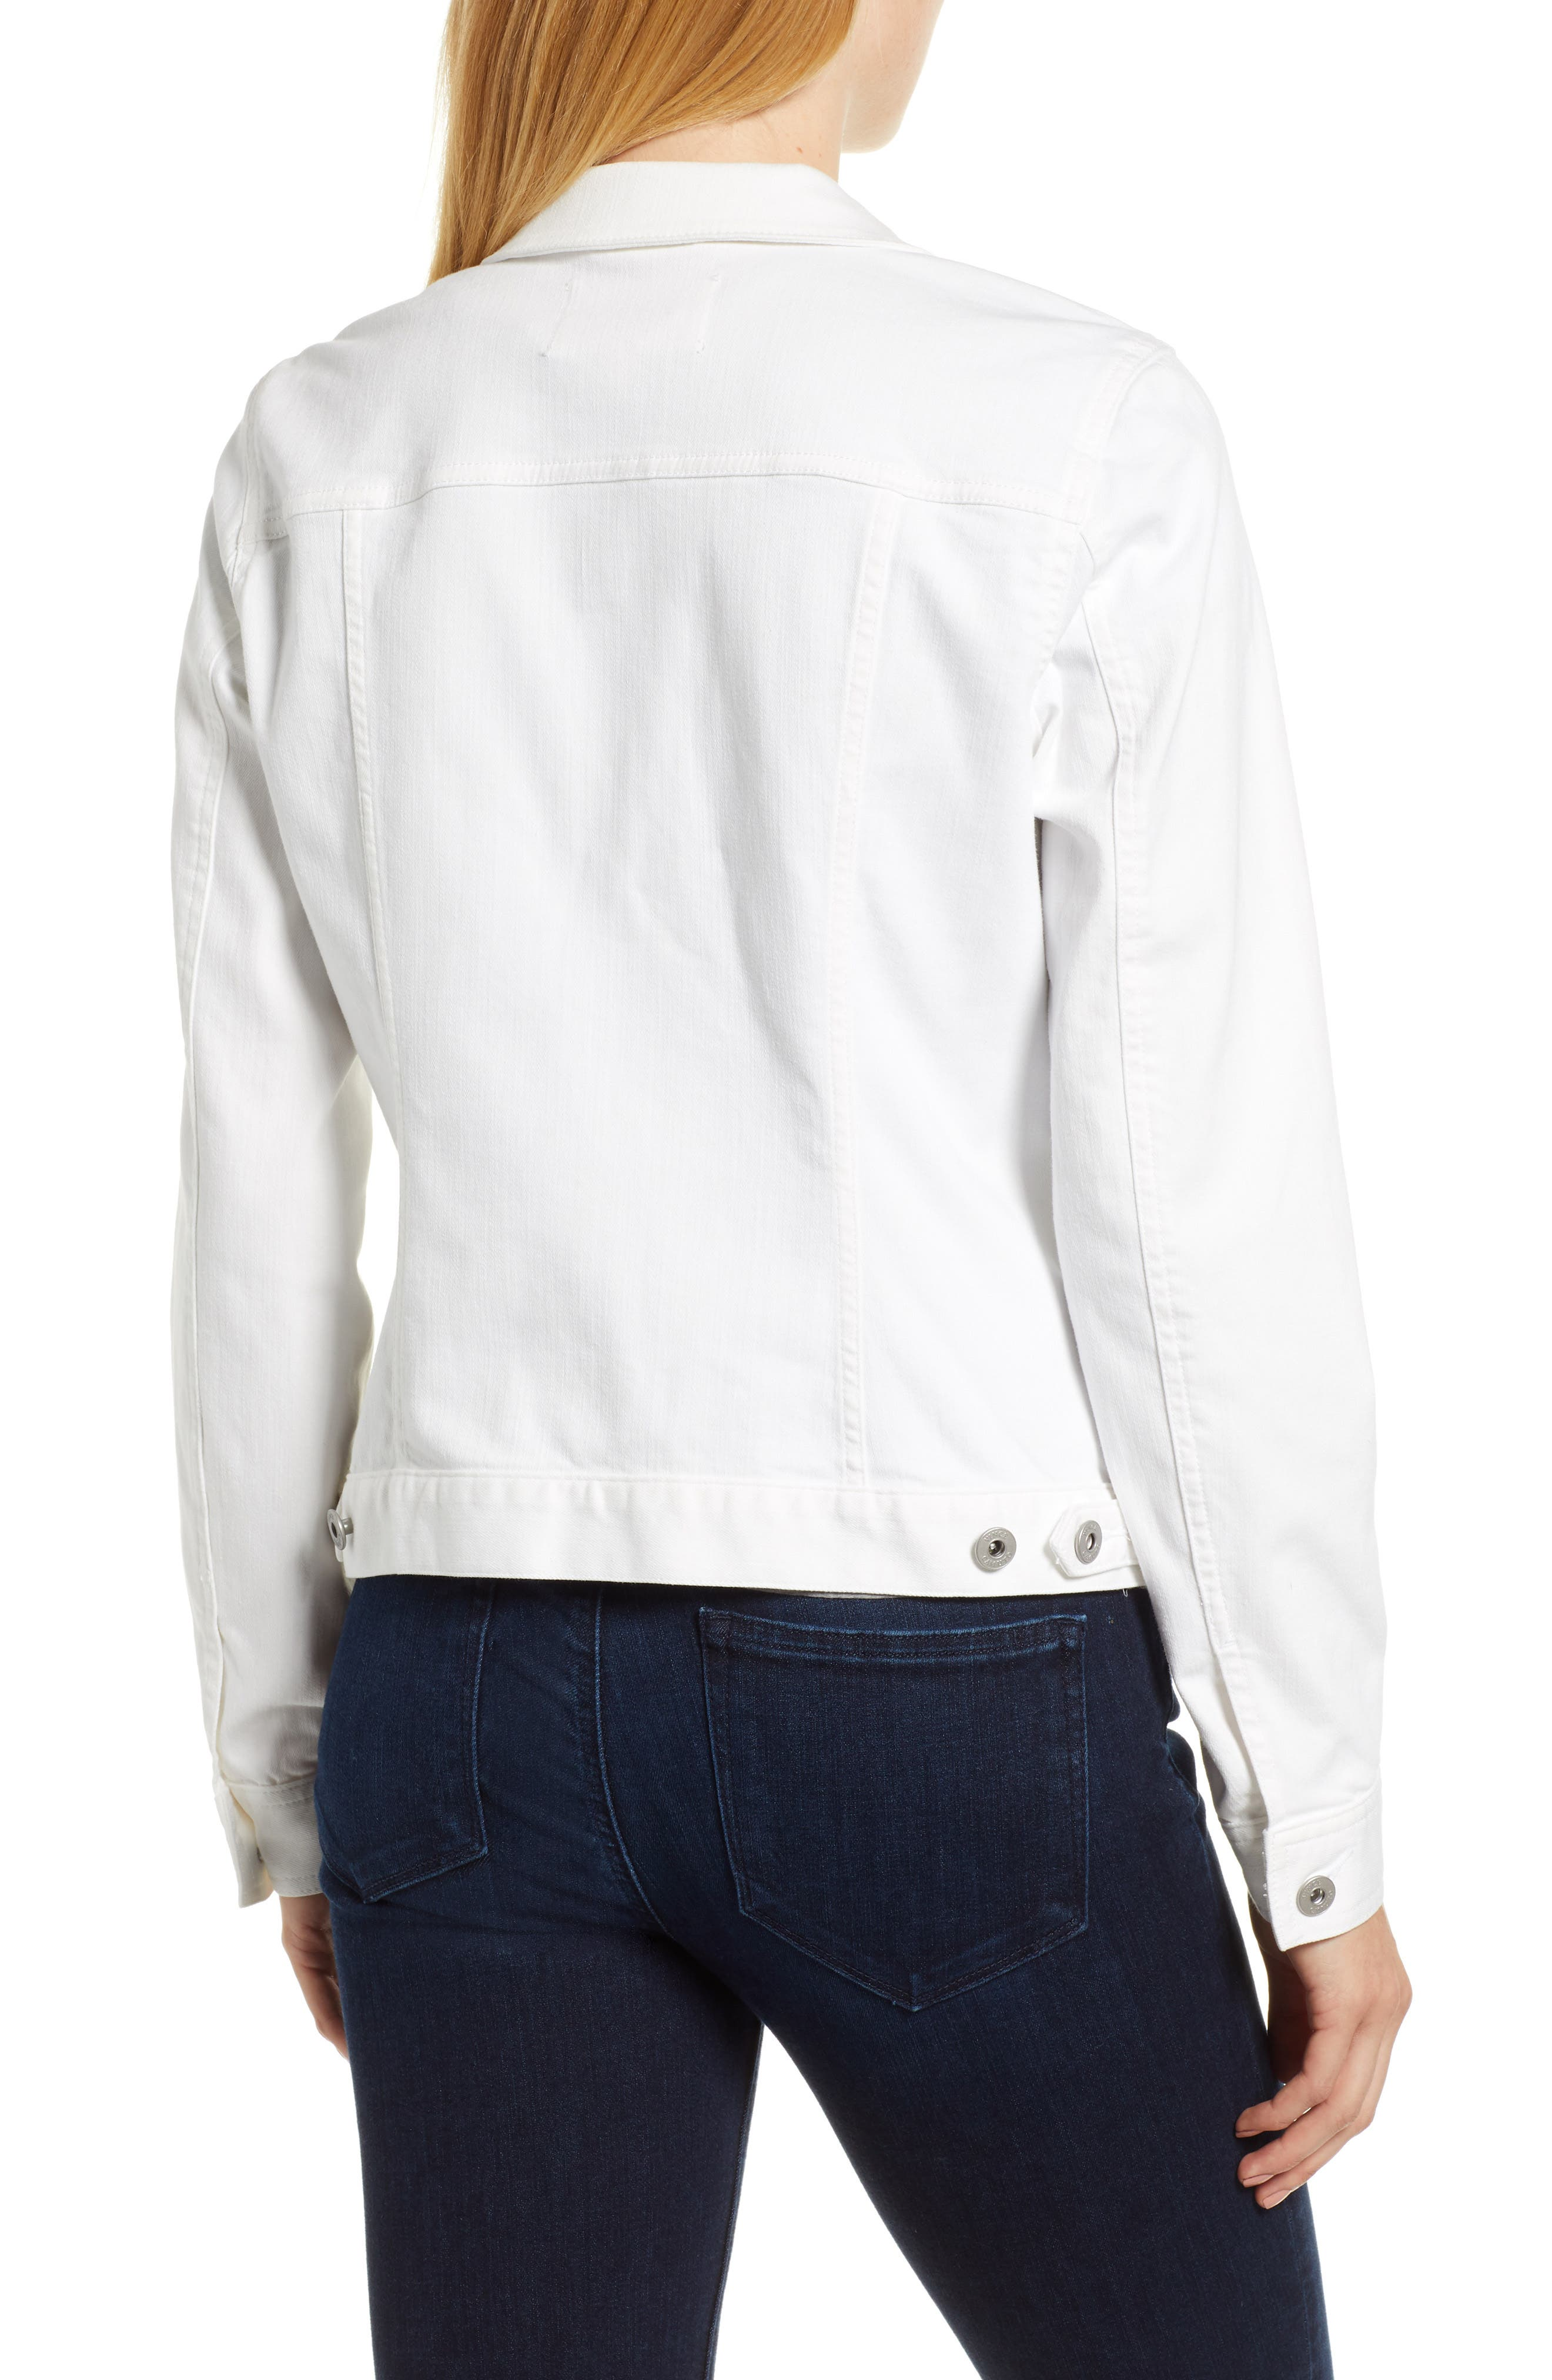 VINCE CAMUTO, Two by Vince Camuto Denim Jacket, Alternate thumbnail 2, color, ULTRA WHITE